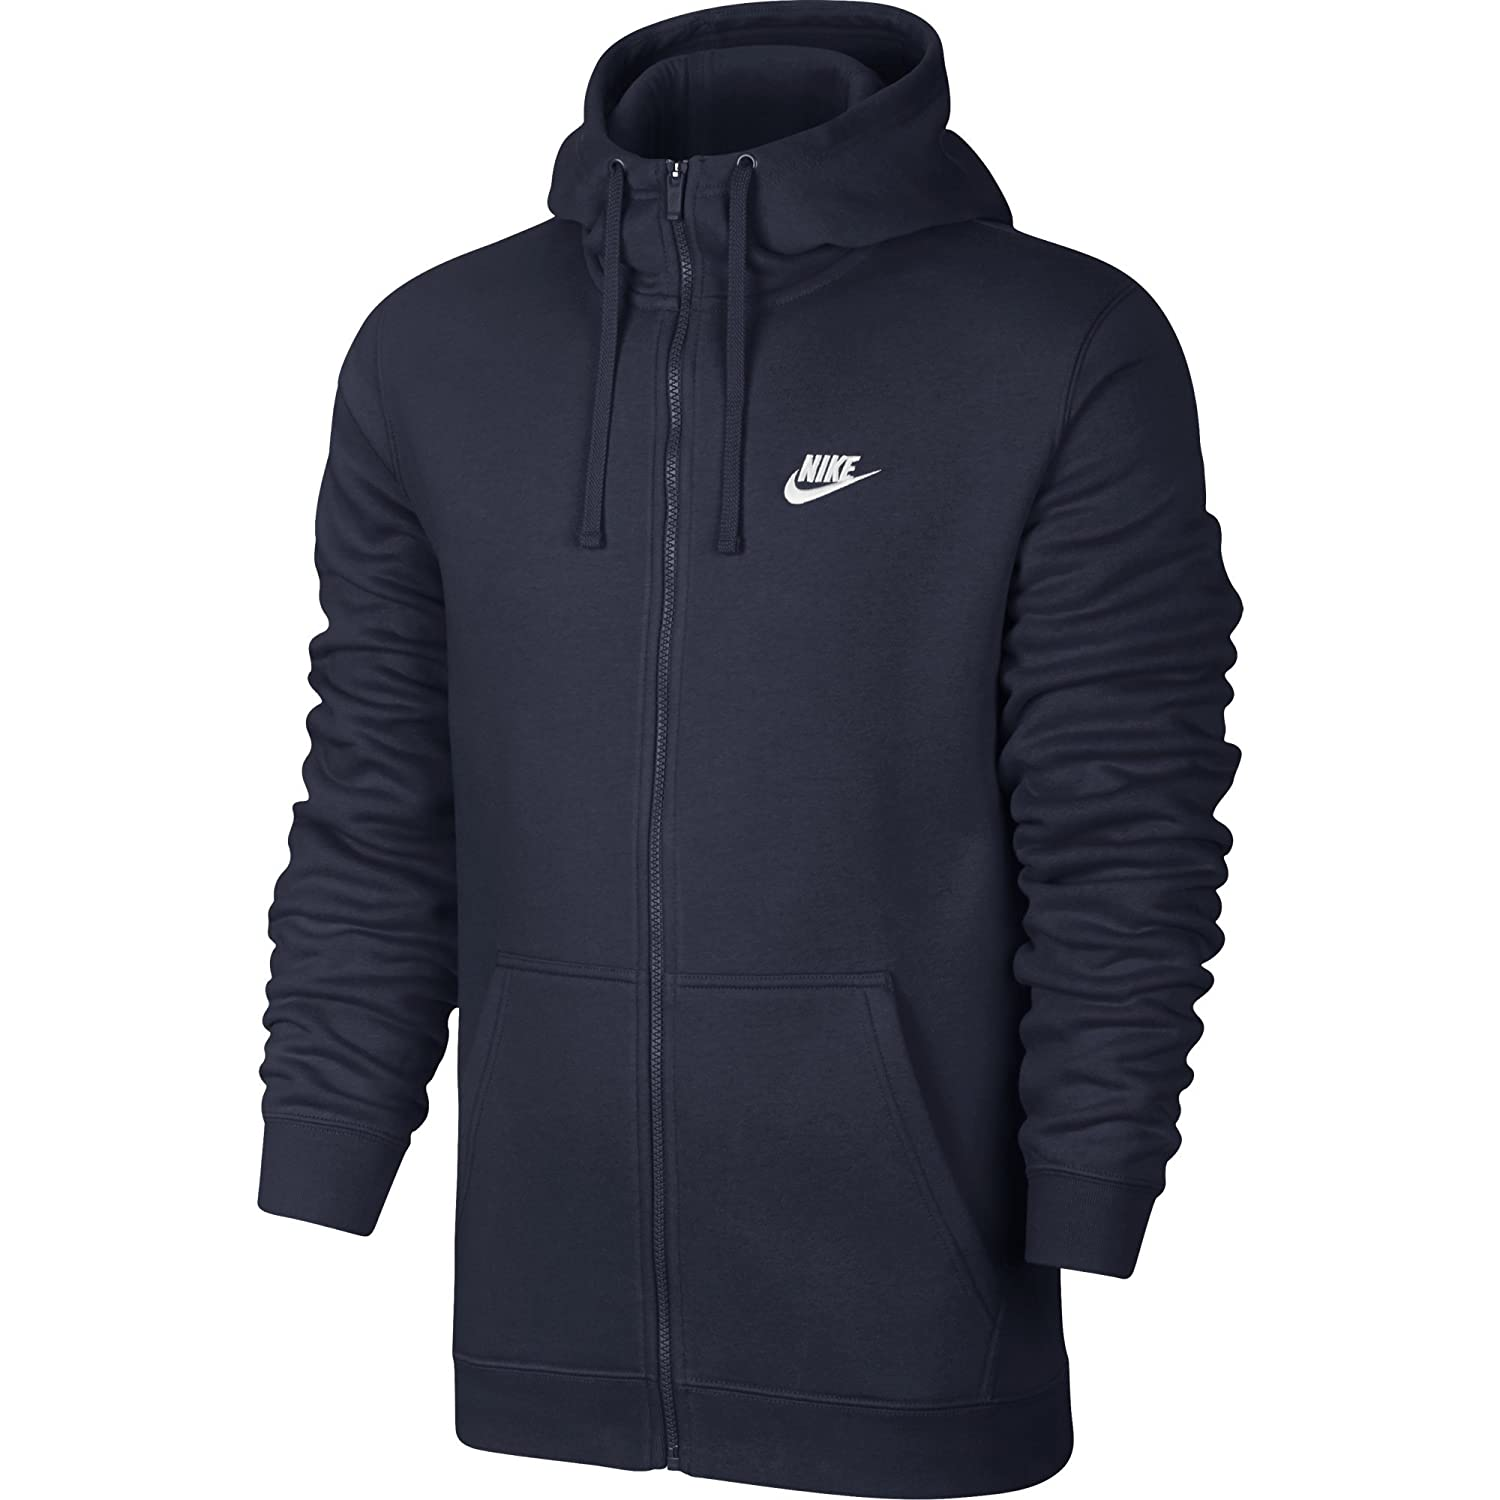 8f5a65a244b4 Amazon.com  NIKE Sportswear Men s Full Zip Club Hoodie  Nike  Sports    Outdoors